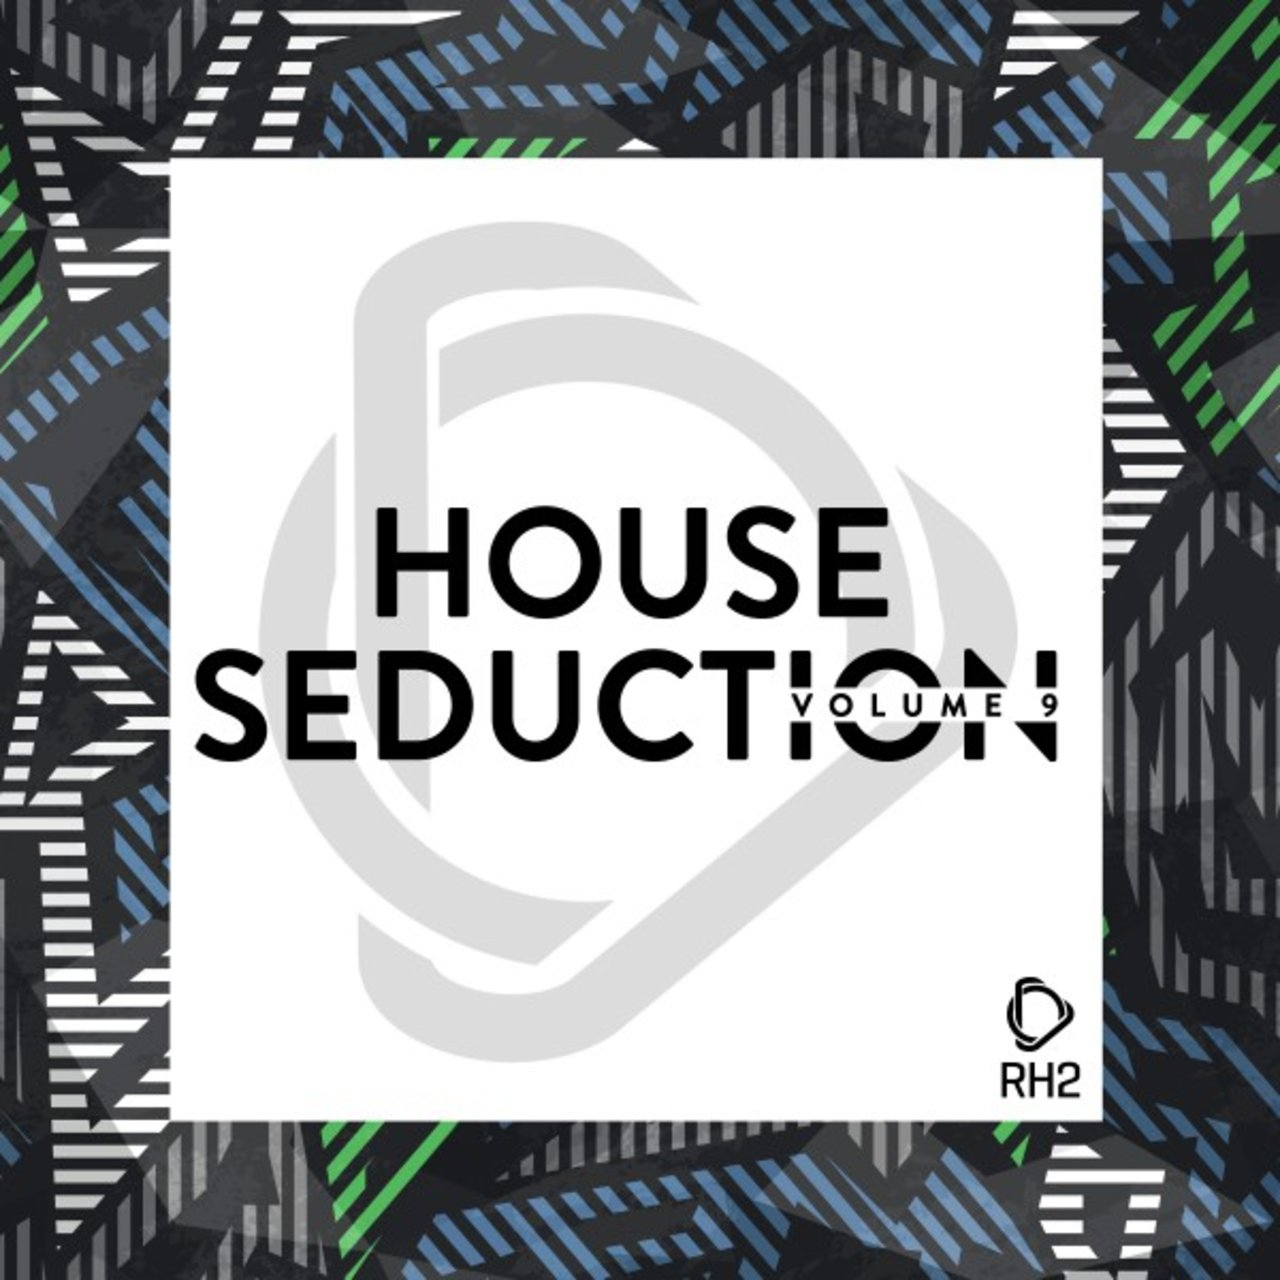 House Seduction, Vol. 9